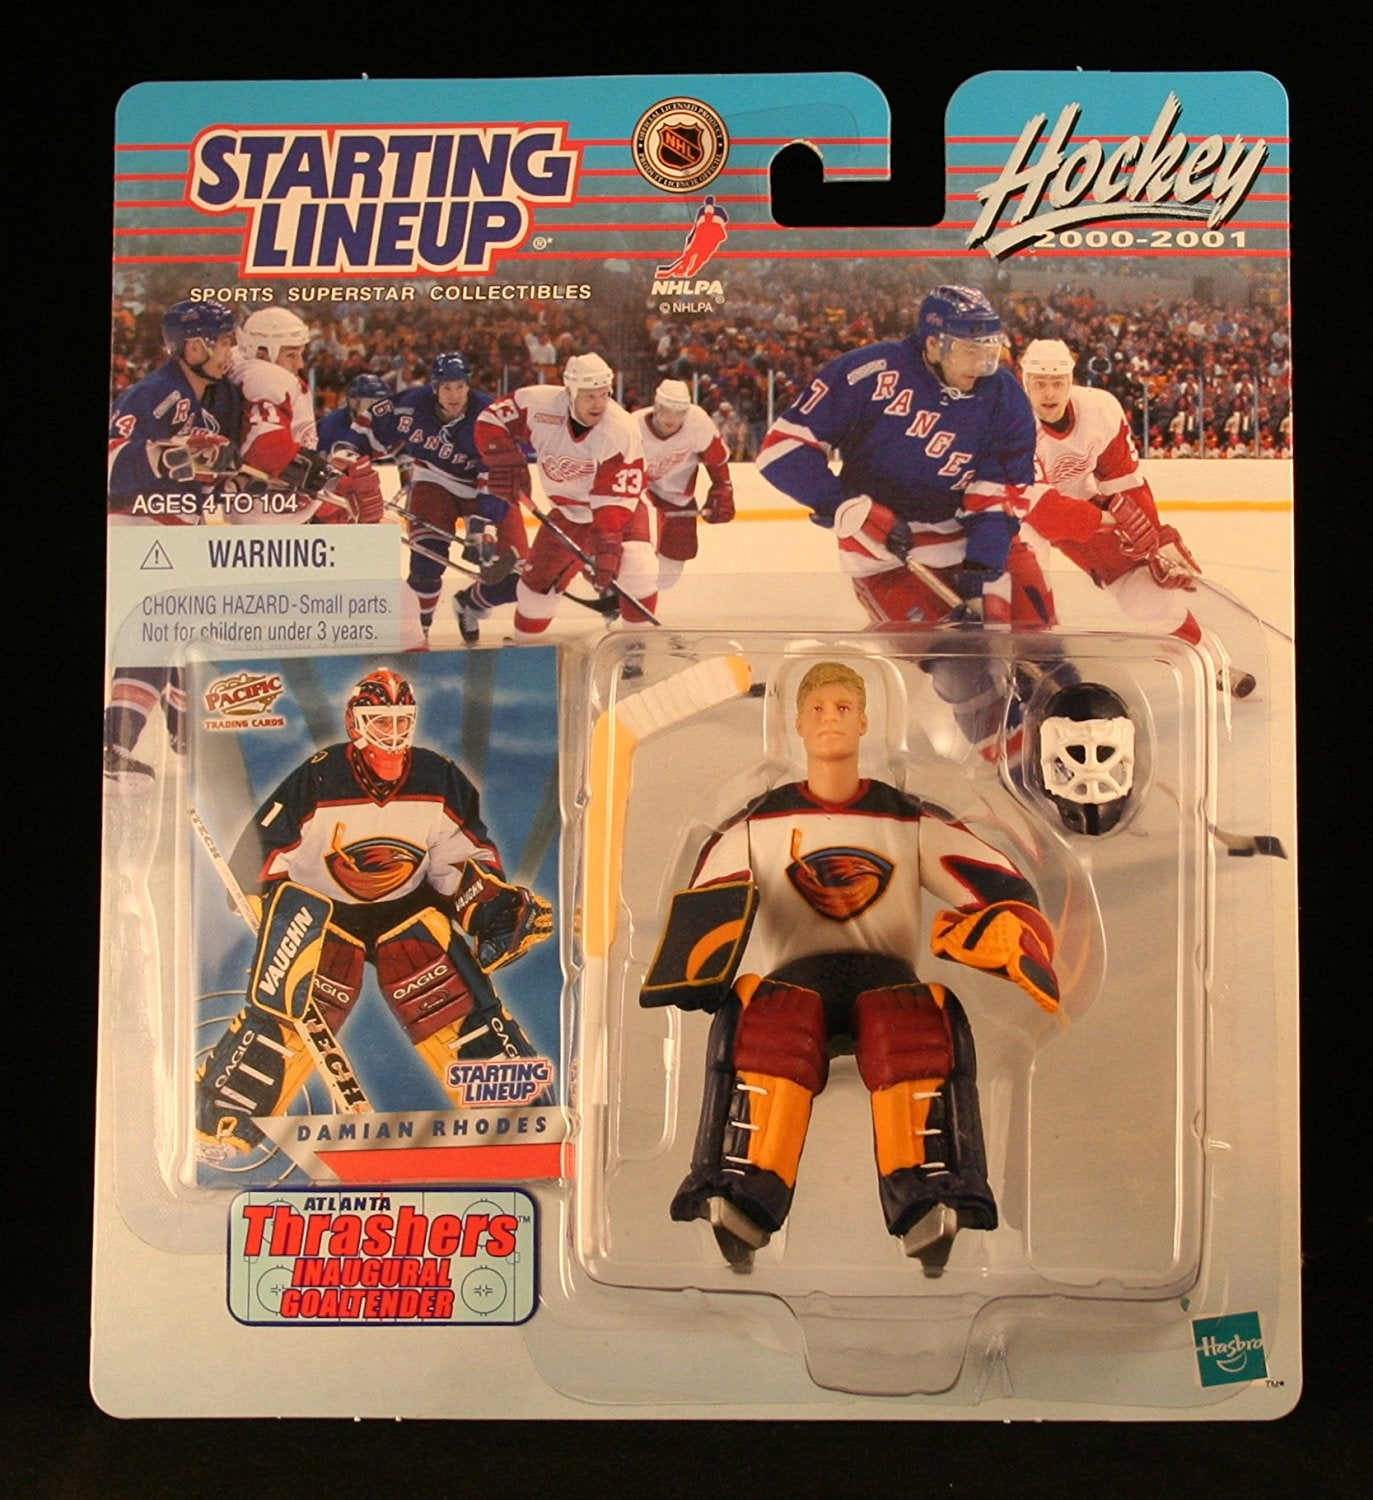 DAMIAN RHODES / ATLANTA THRASHERS 2000-2001 NHL Starting Lineup Action Figure & Exclusive NHL Collector Trading Card